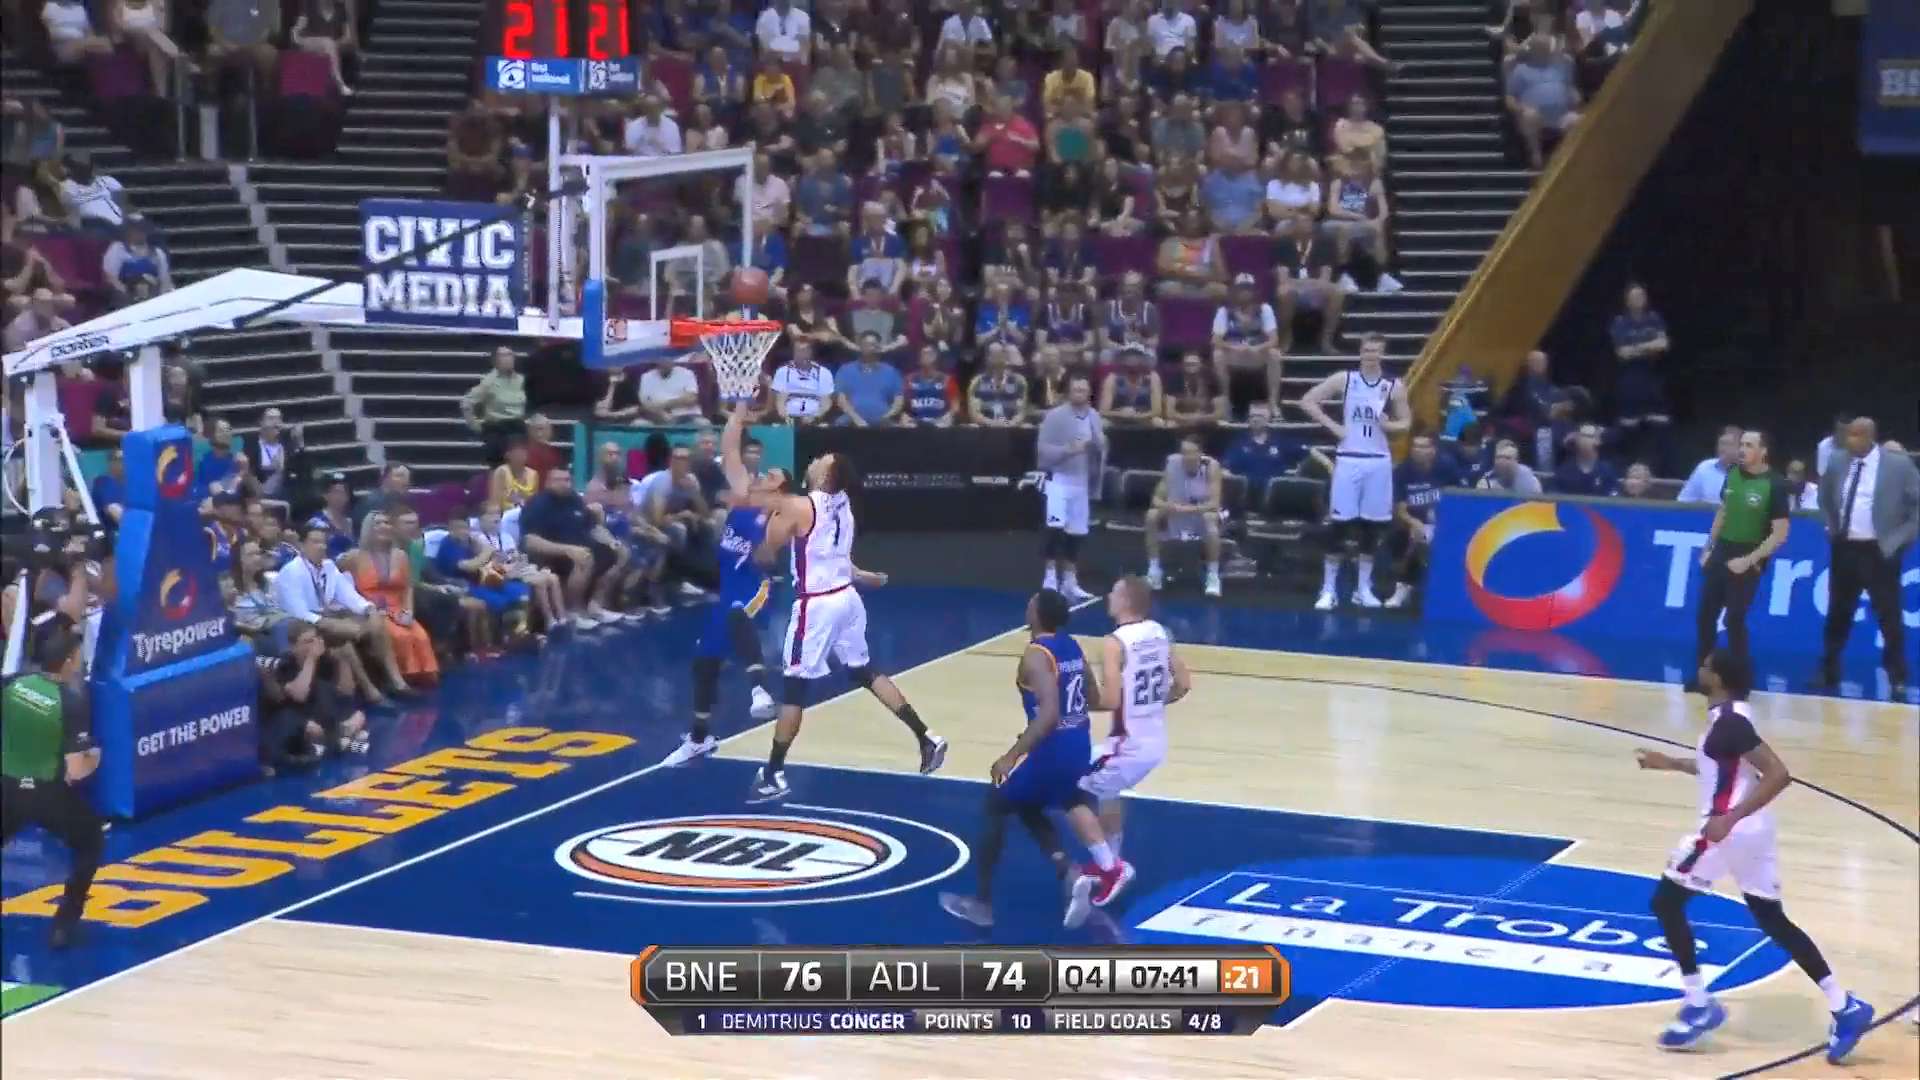 36ers spring major NBL upset